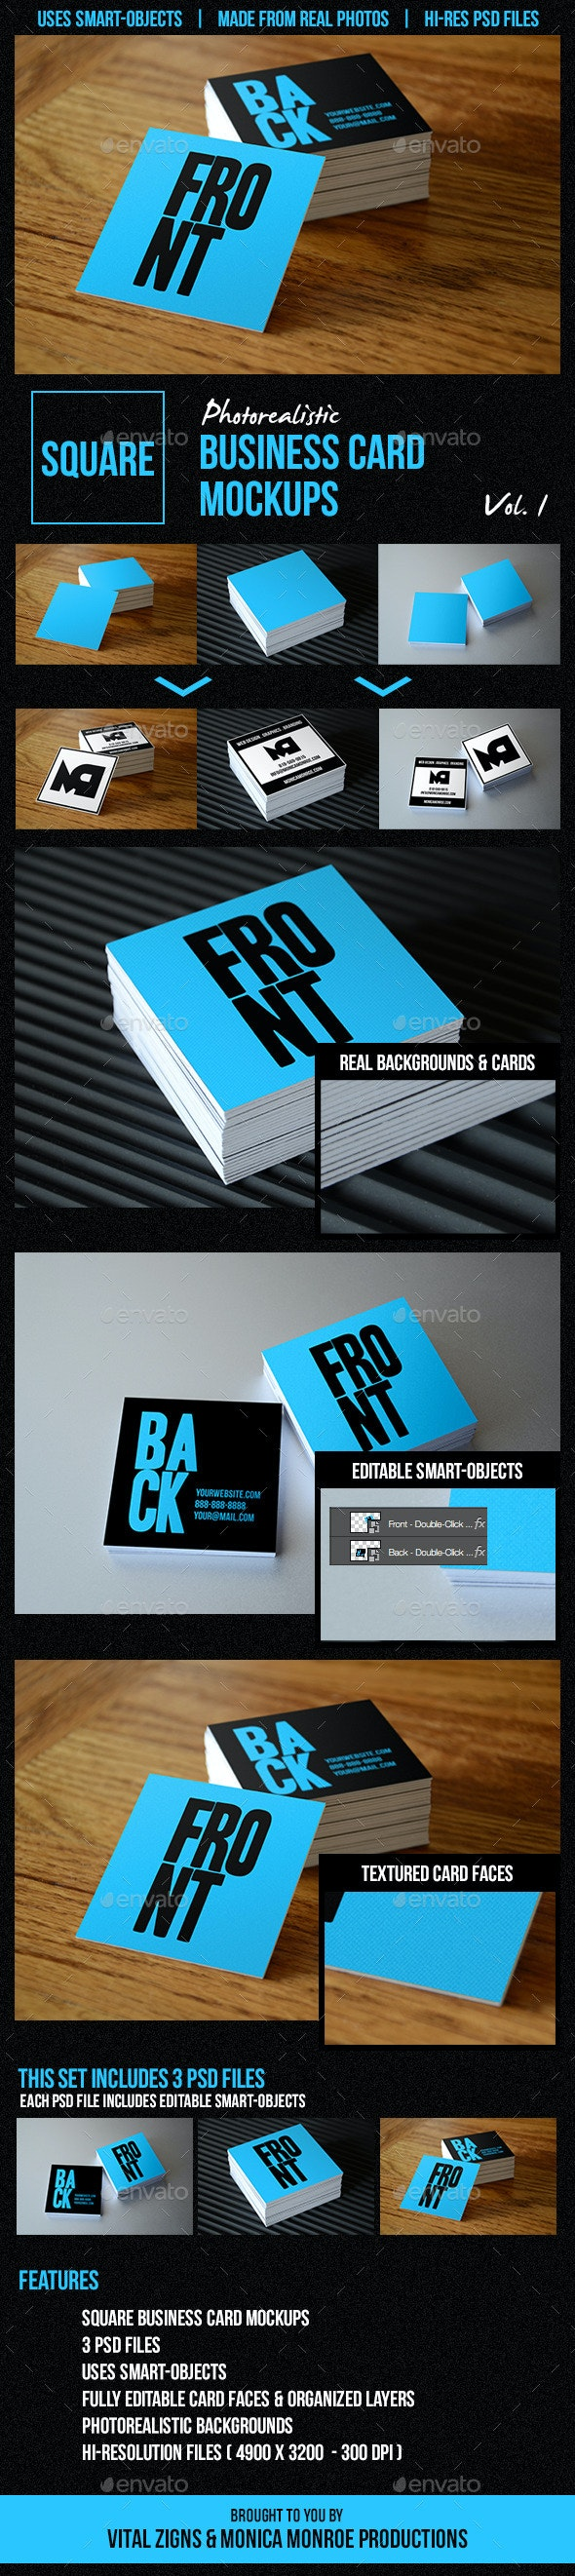 Square Business Card Mockups Vol. 1 - Business Cards Print